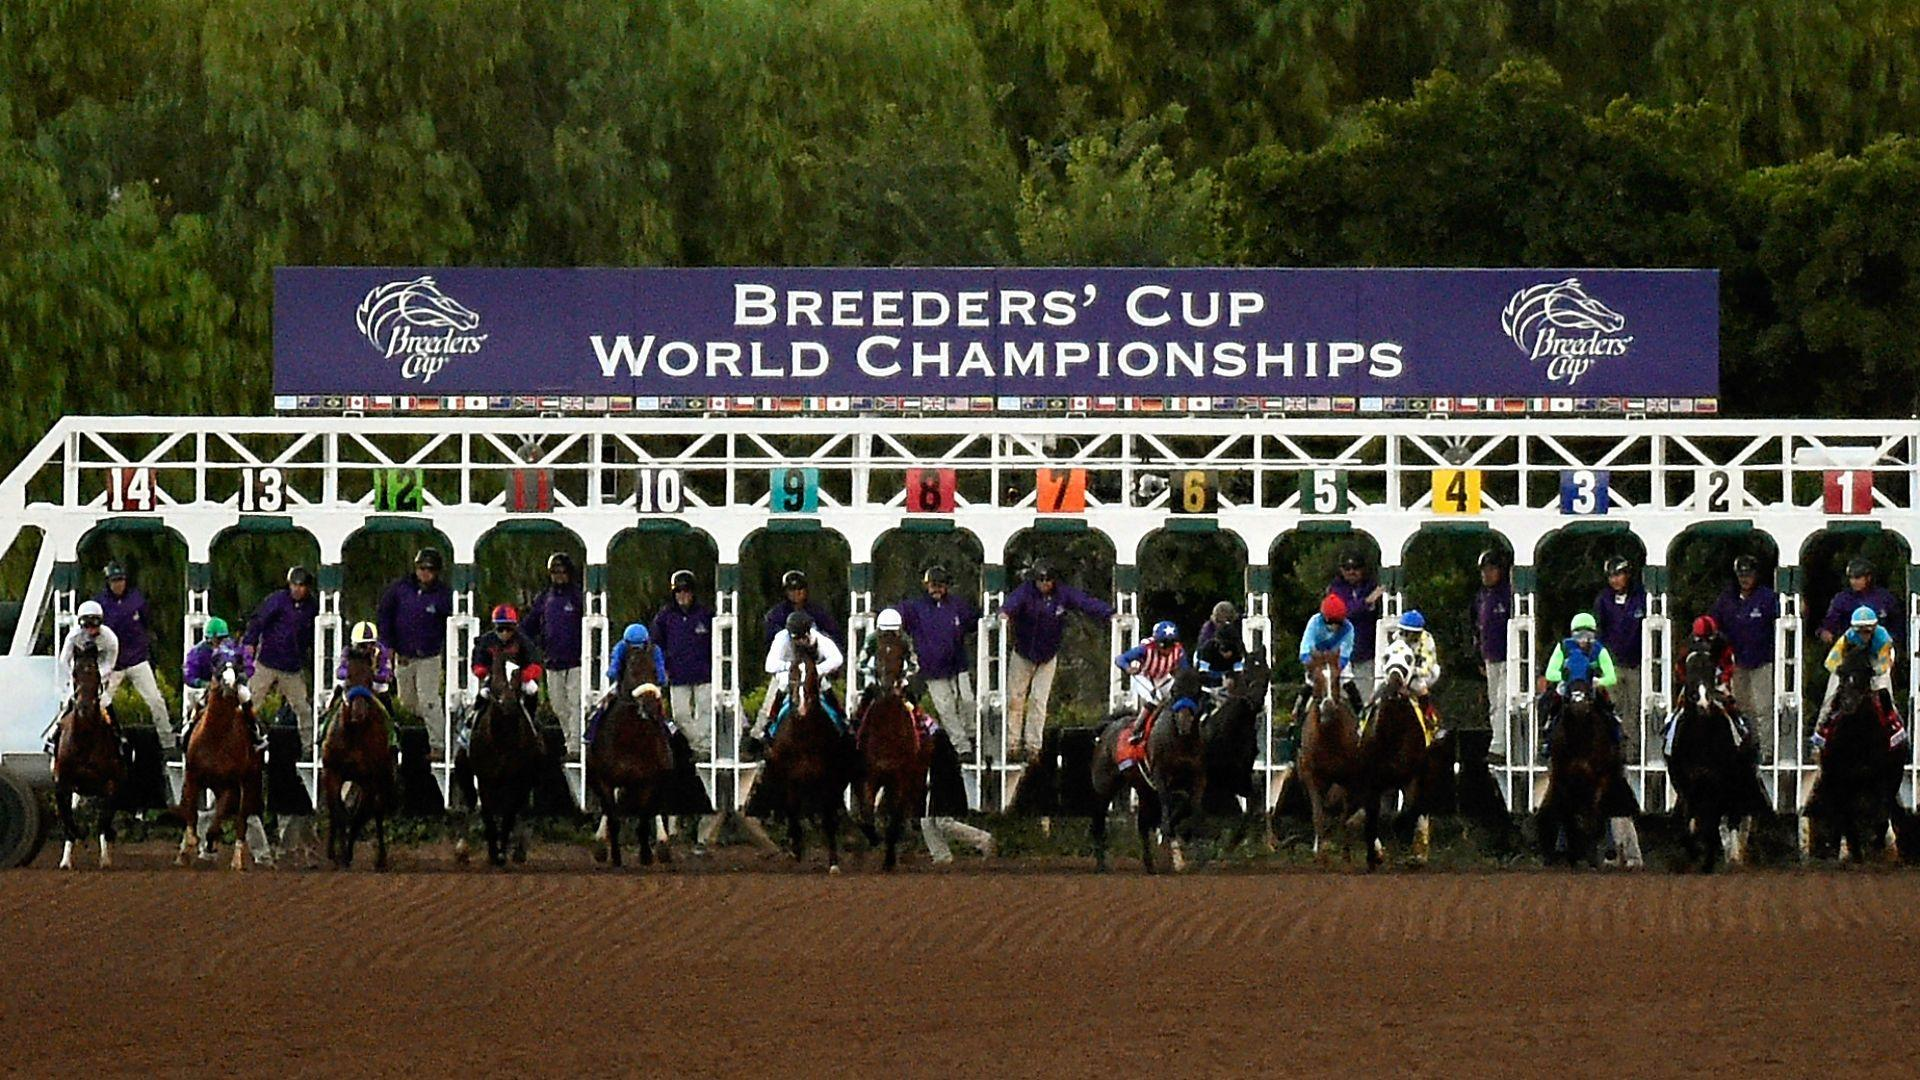 Breeders Cup Ticket Packages including intrack hospitality twoday tickets local hotel accommodations VIP extras and more!